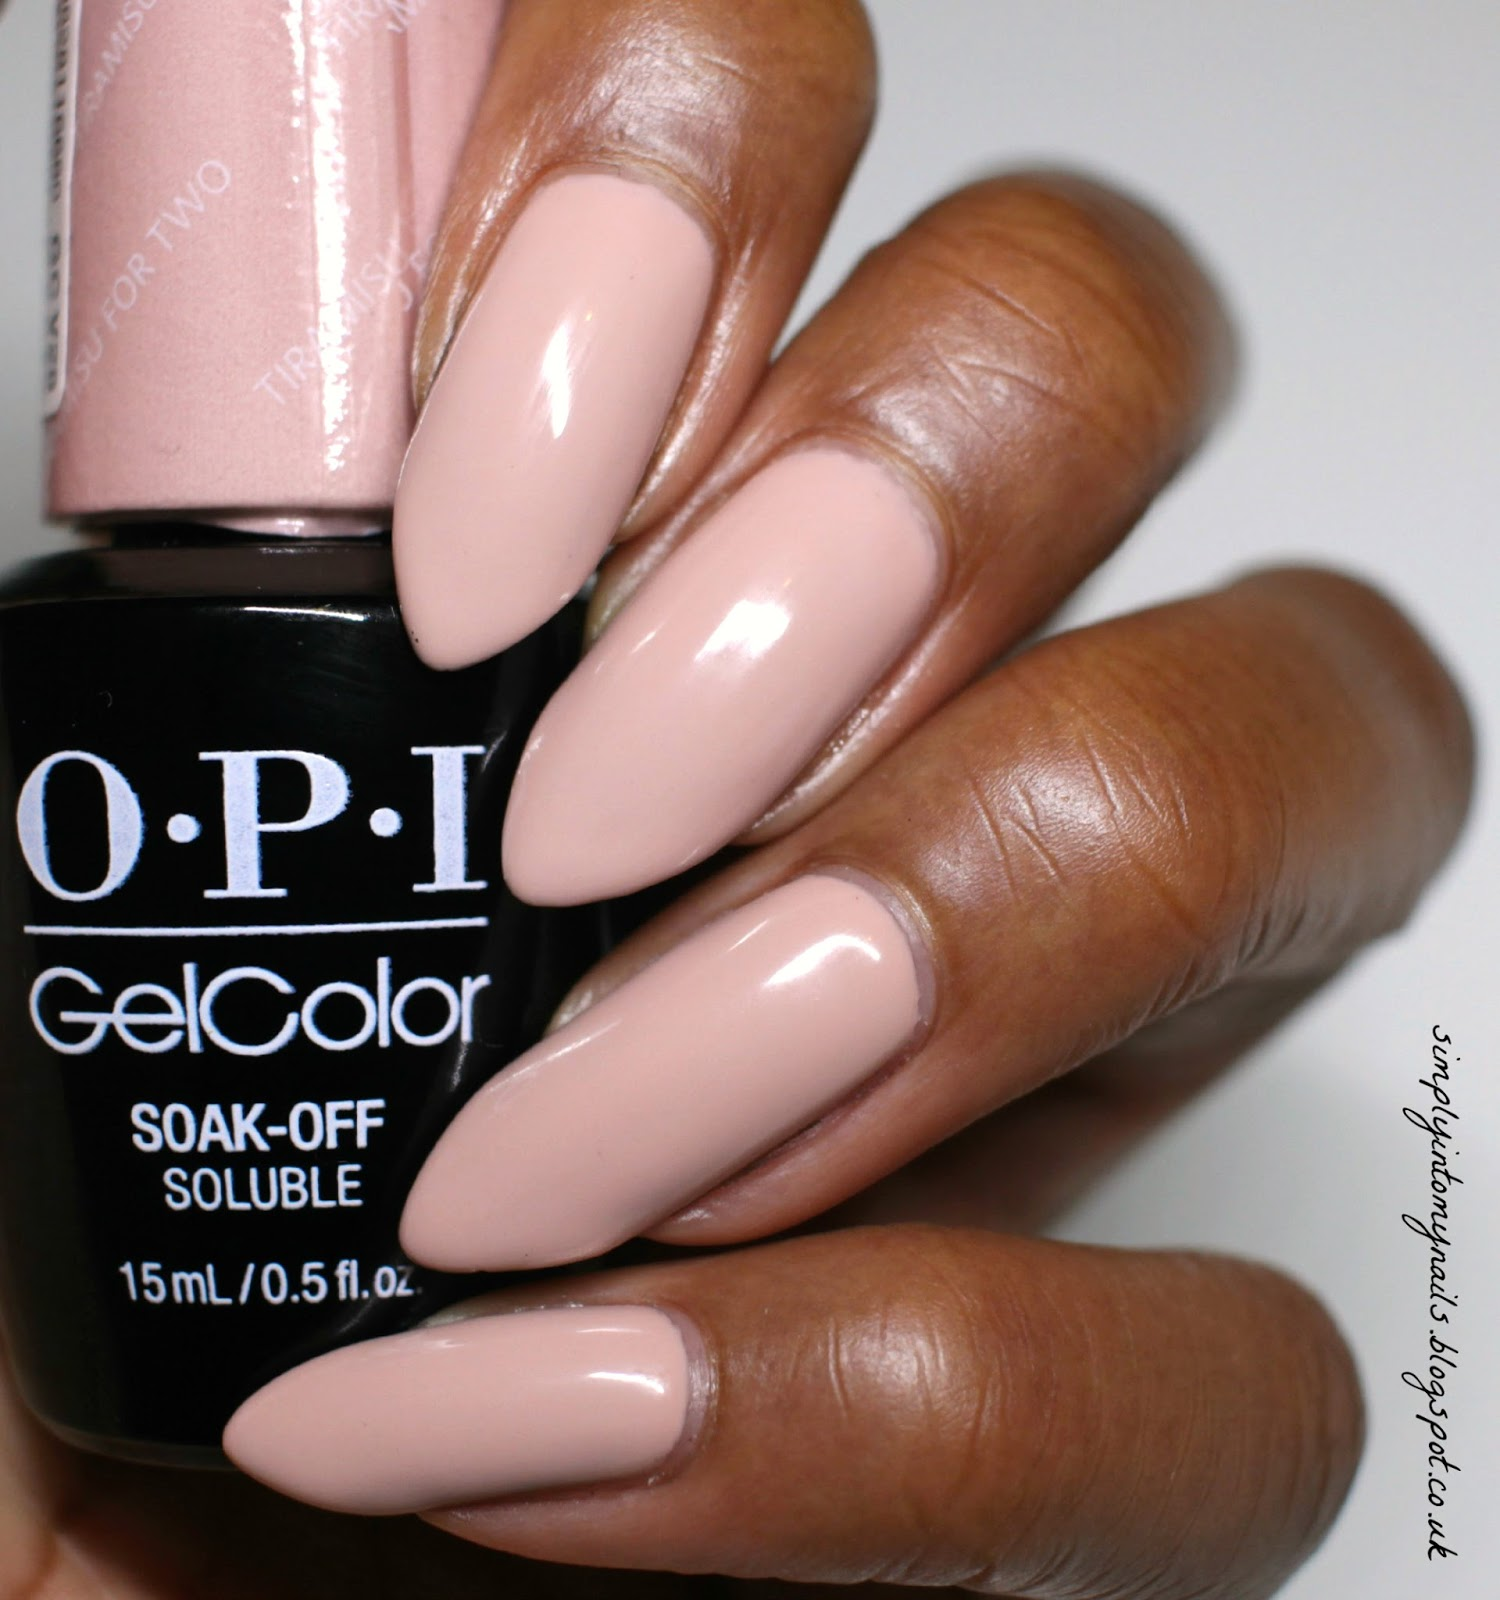 Gel Colors Jord Watch Manicure With Opi Gelcolor Tiramisu For Two